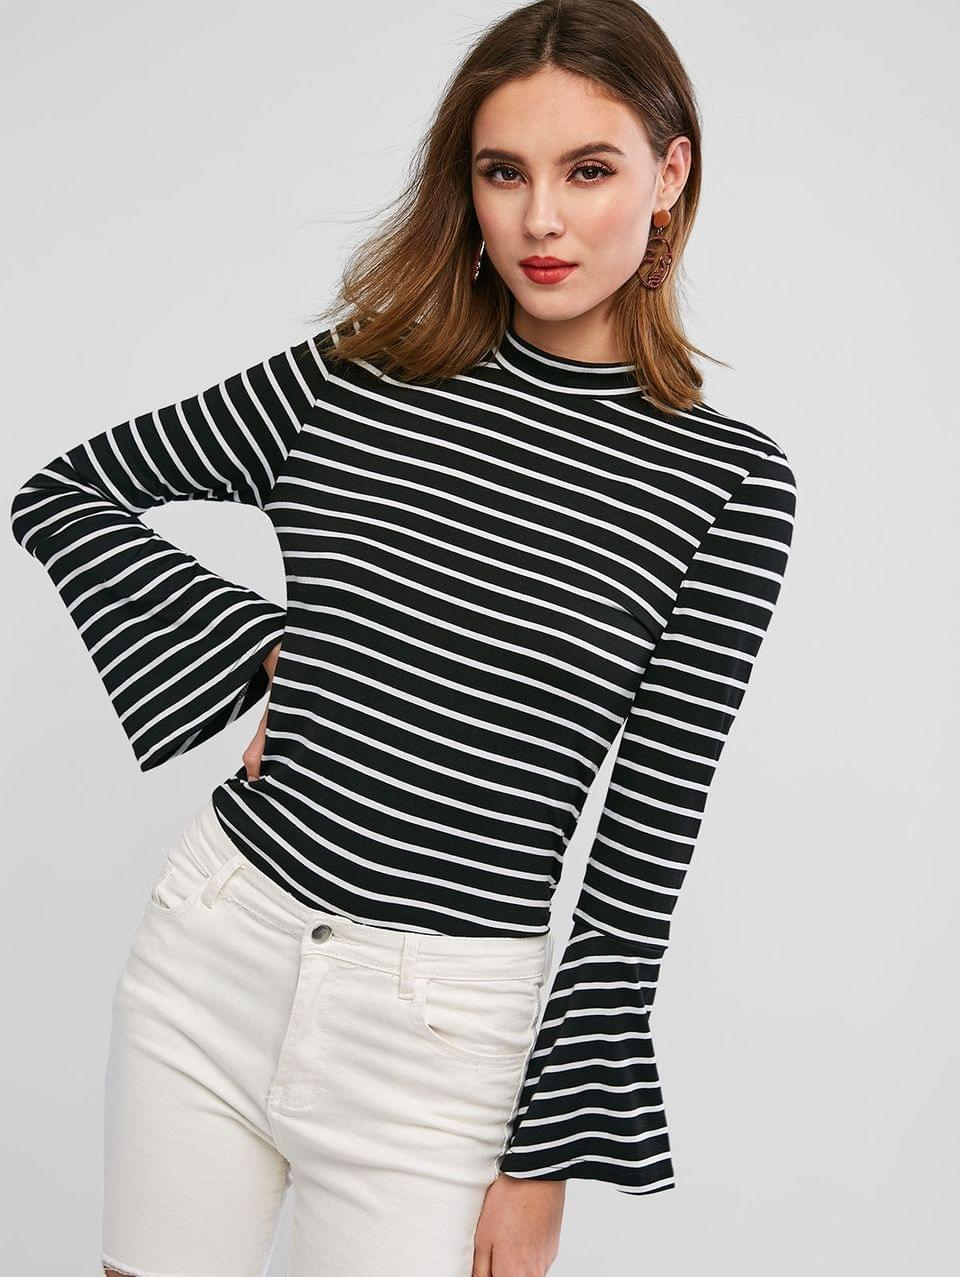 Women's Striped Crew Neck Flare Sleeve Tee - Black S